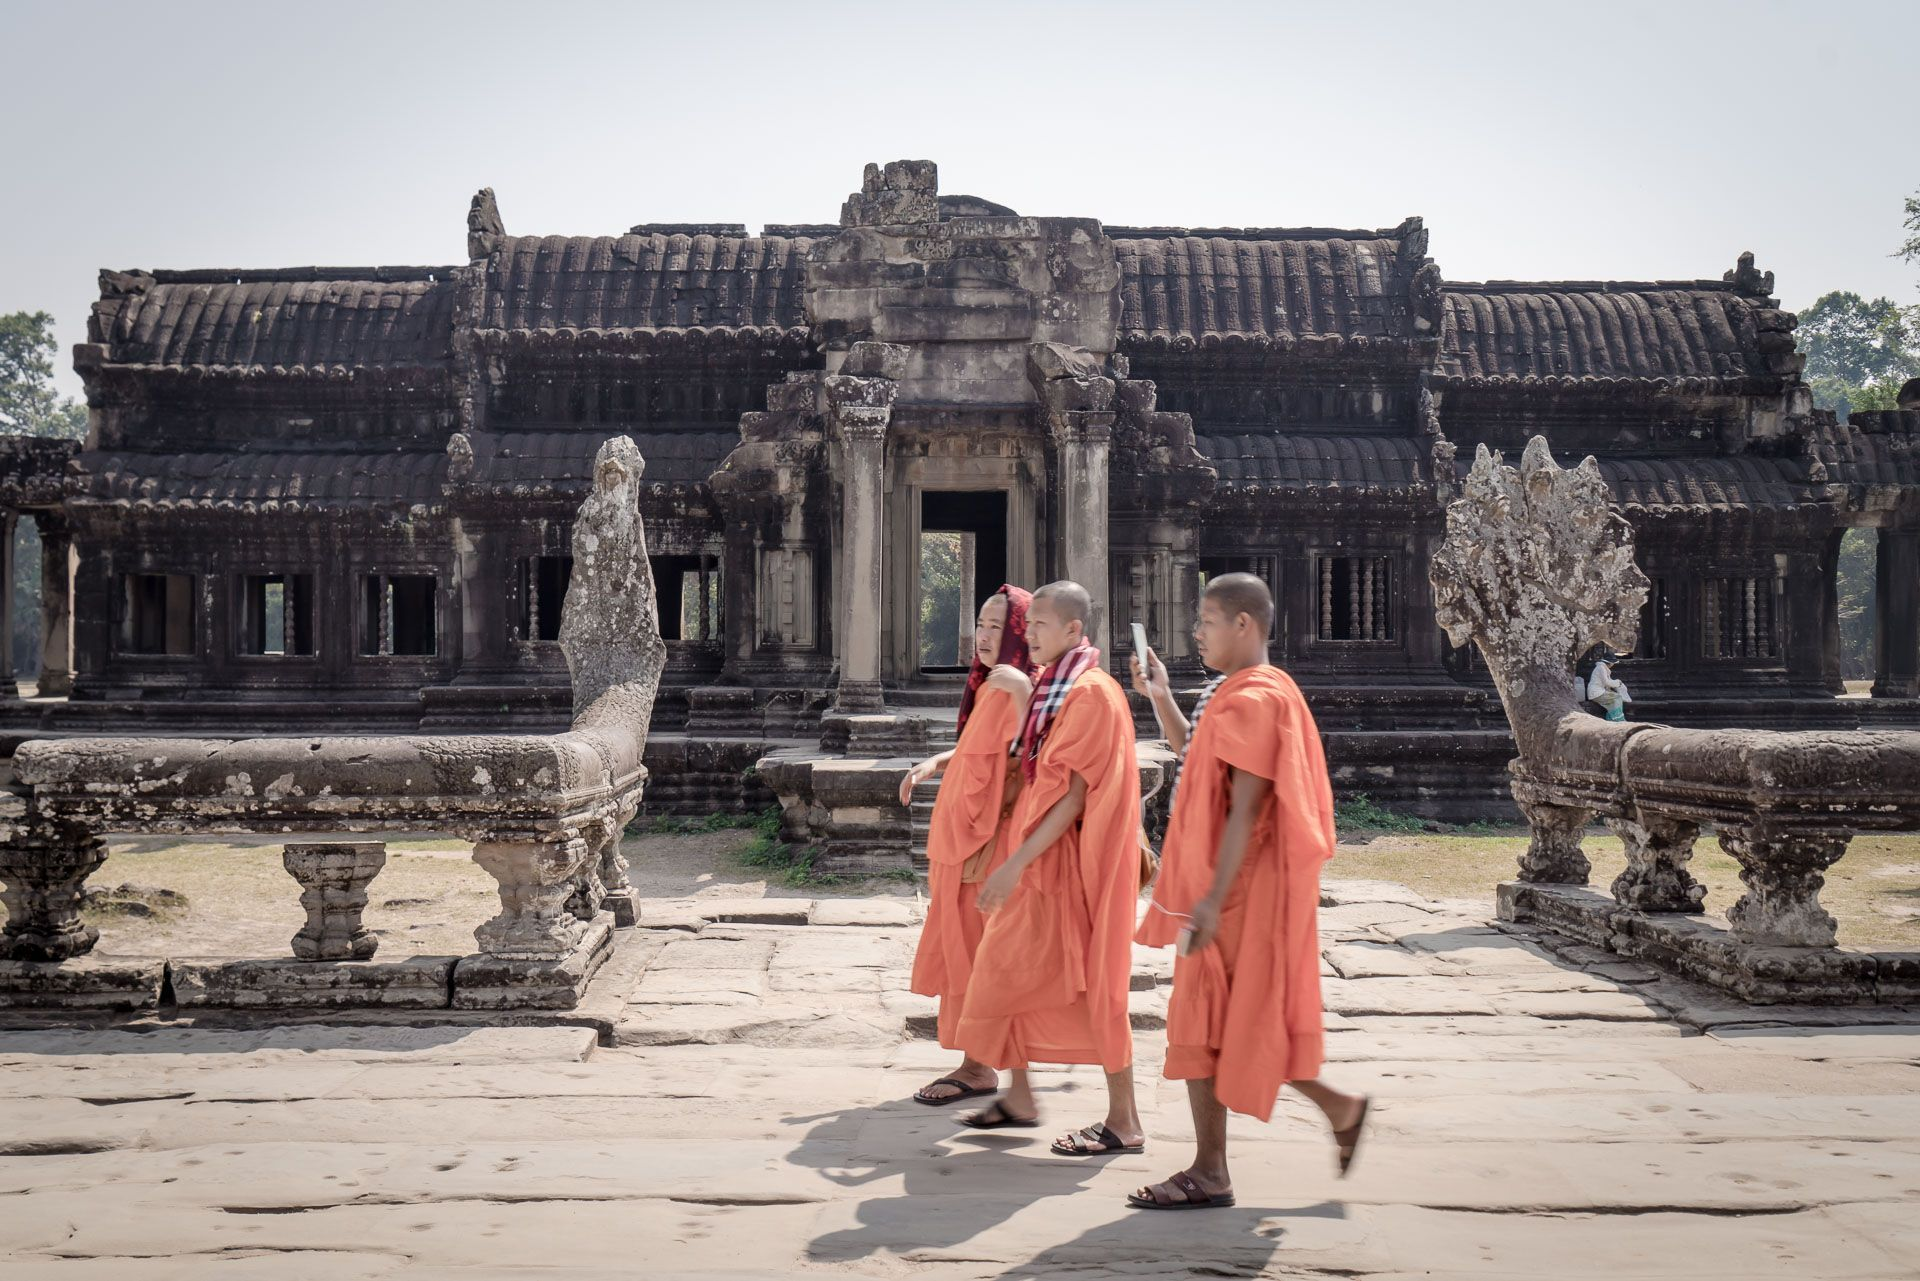 Lesvoyageuses-guide-voyage-Siem-reap-angkor-temples-Cambodge-5